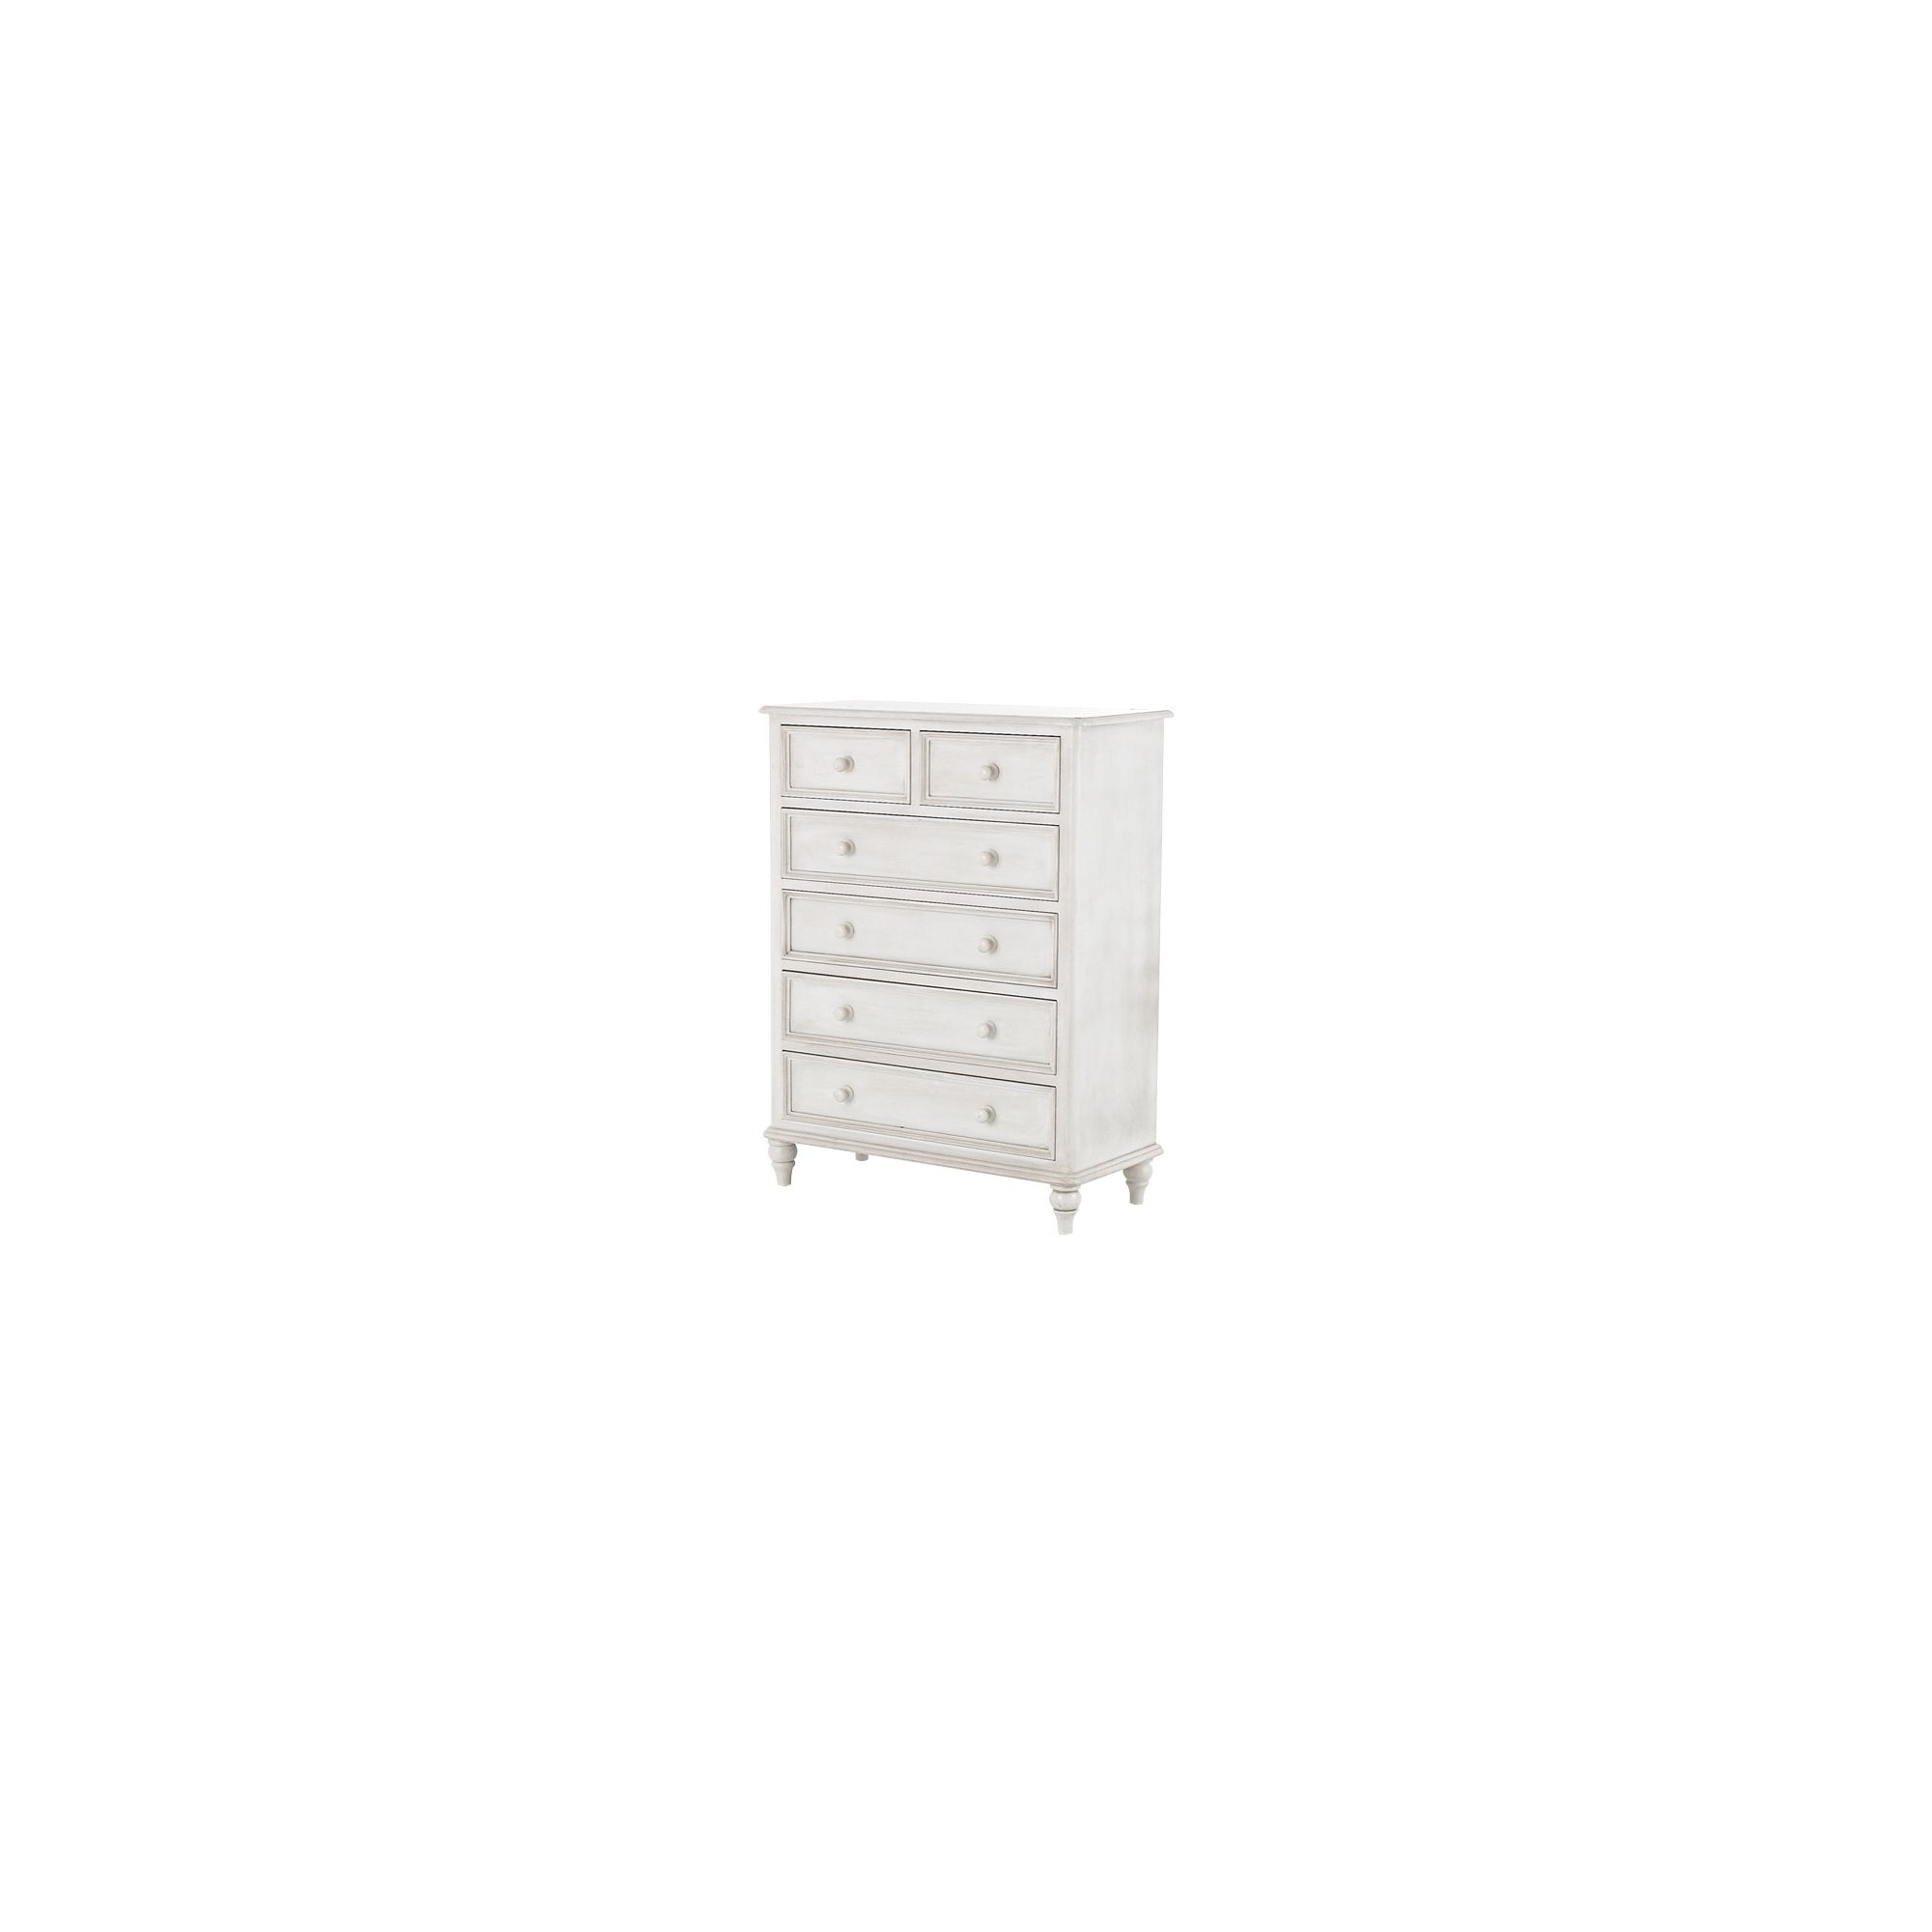 Thorndon Brittany 2 Over 4 Jumbo Drawer Chest in Antique White at Tesco Direct